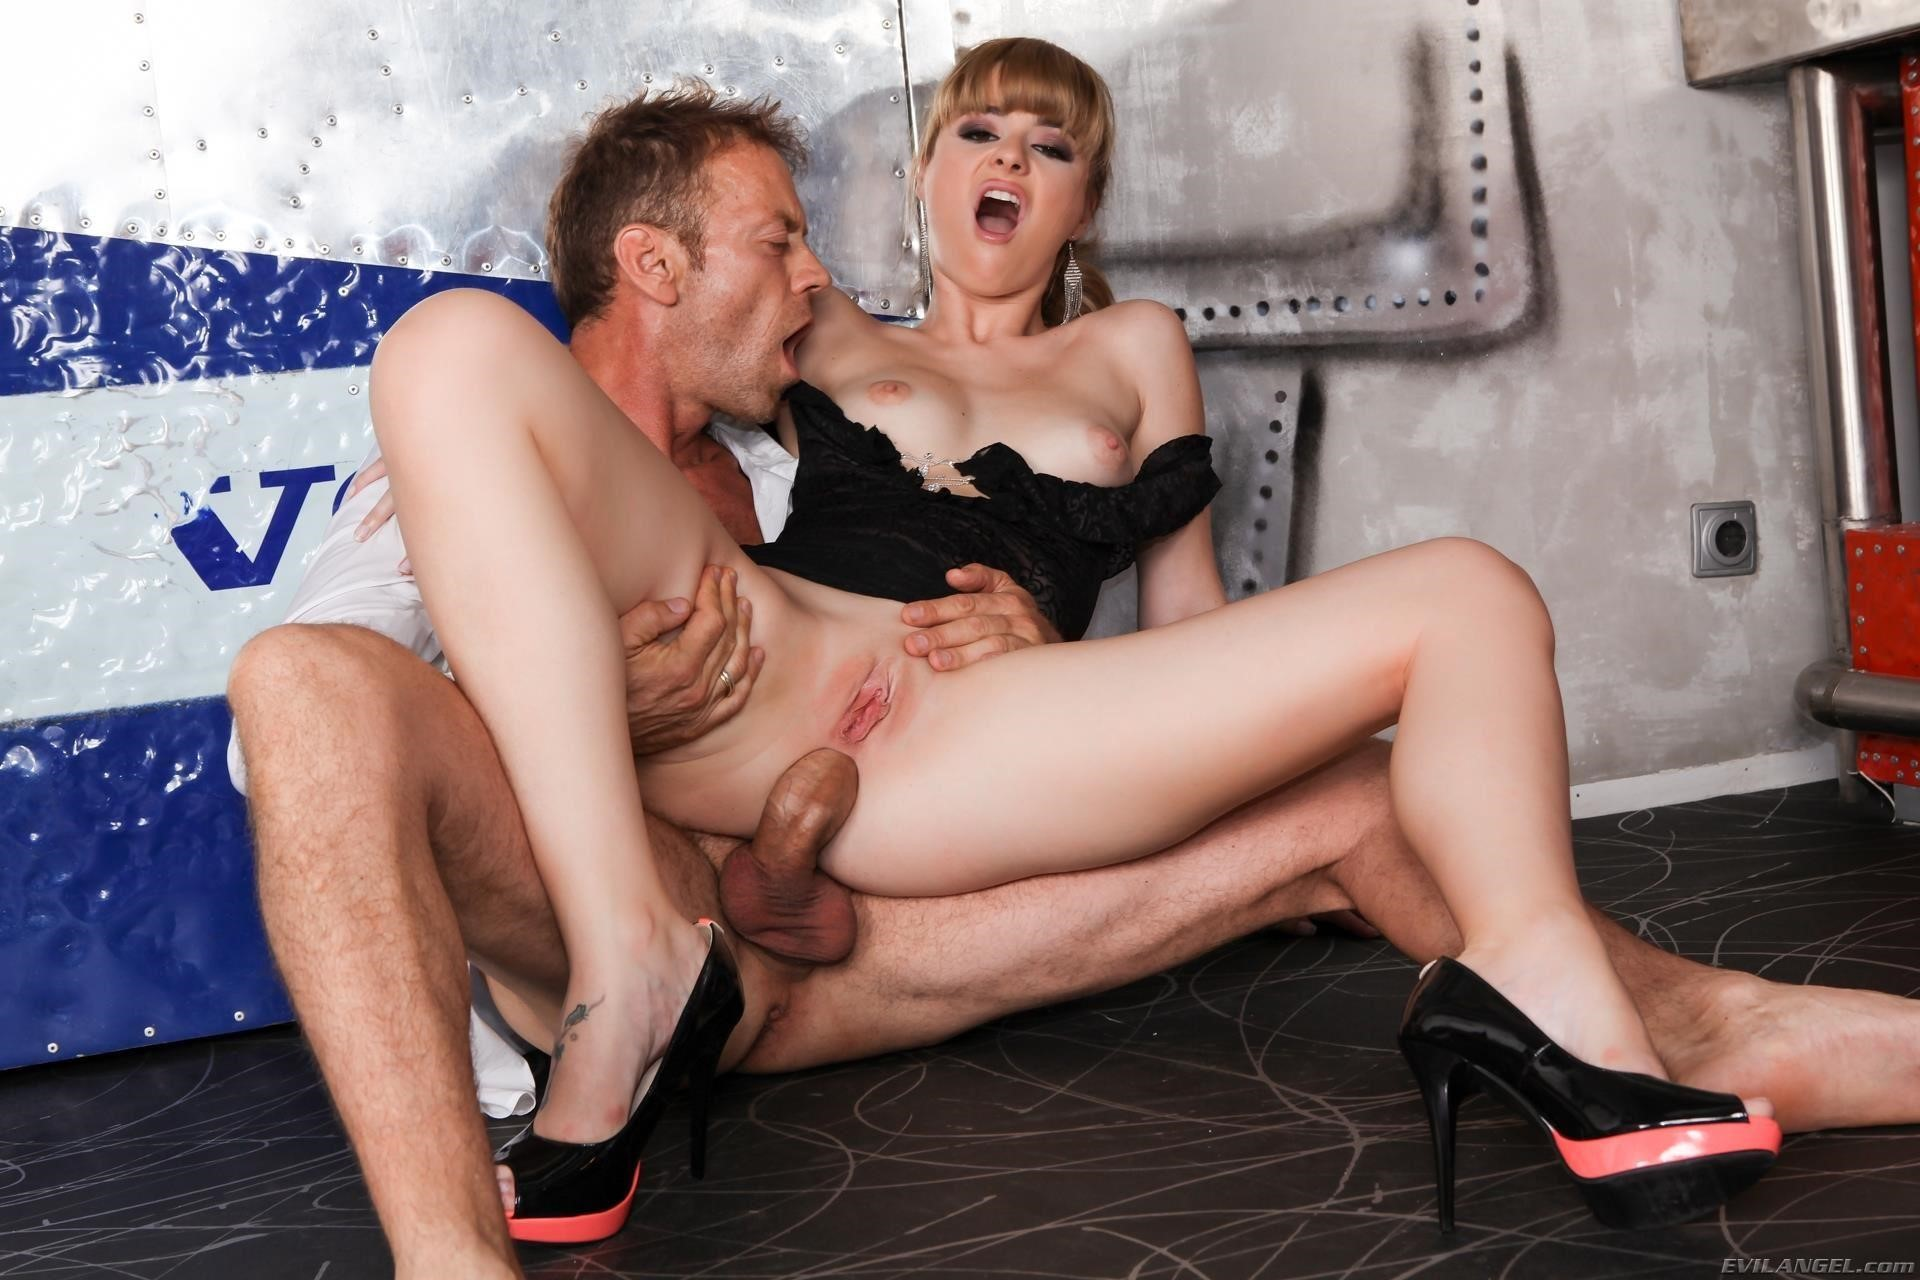 rocco siffredi porno video potno